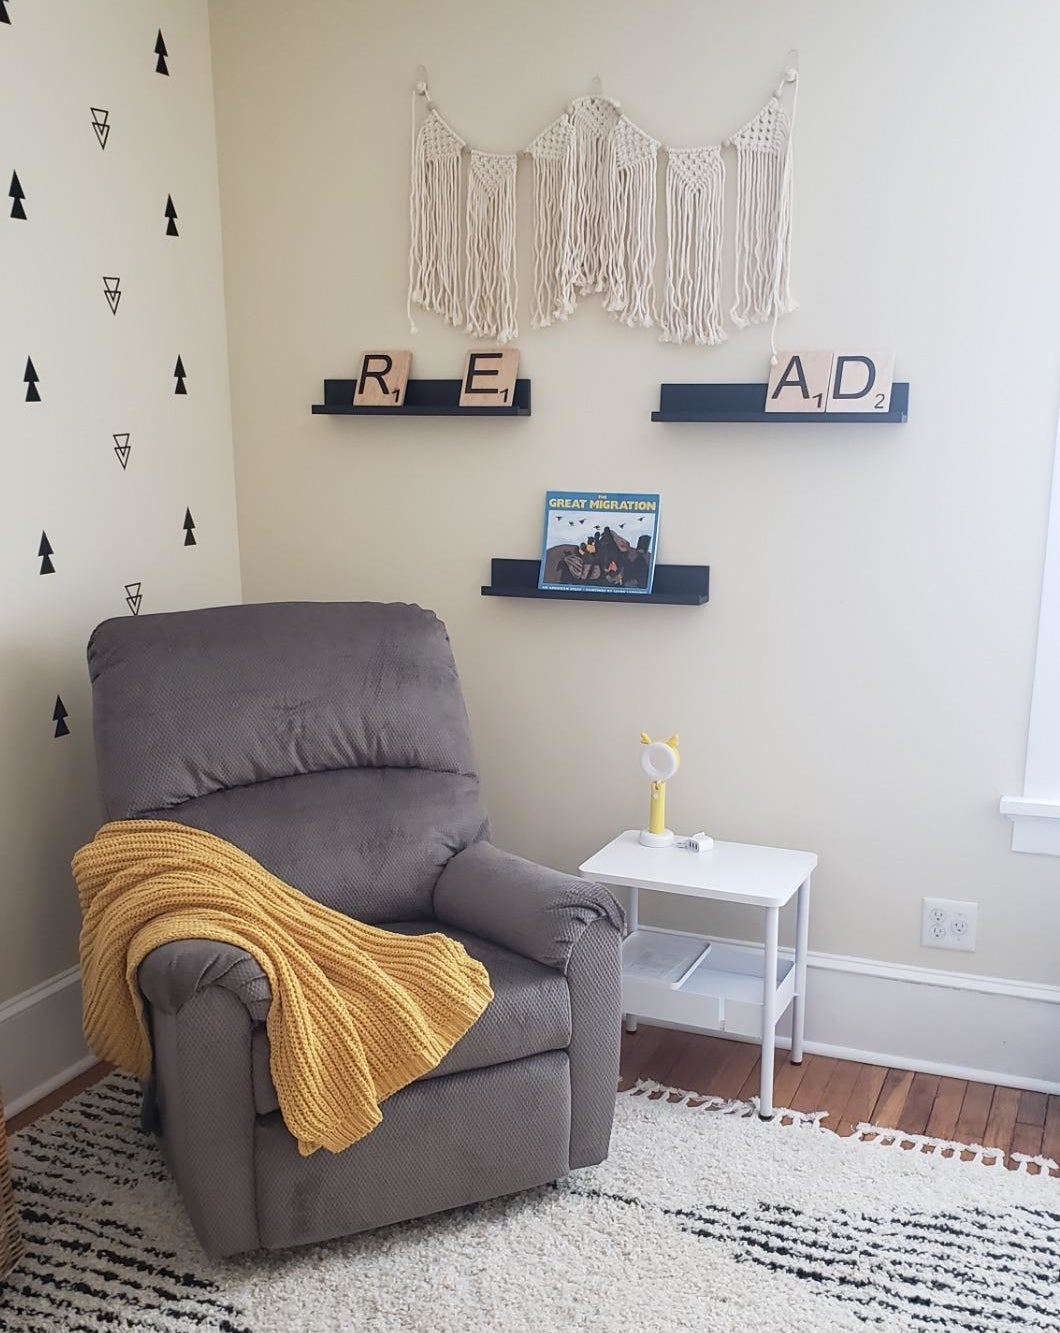 Reviewer's nursery with a recliner and three black ledge shelves on the wall behind, displaying books